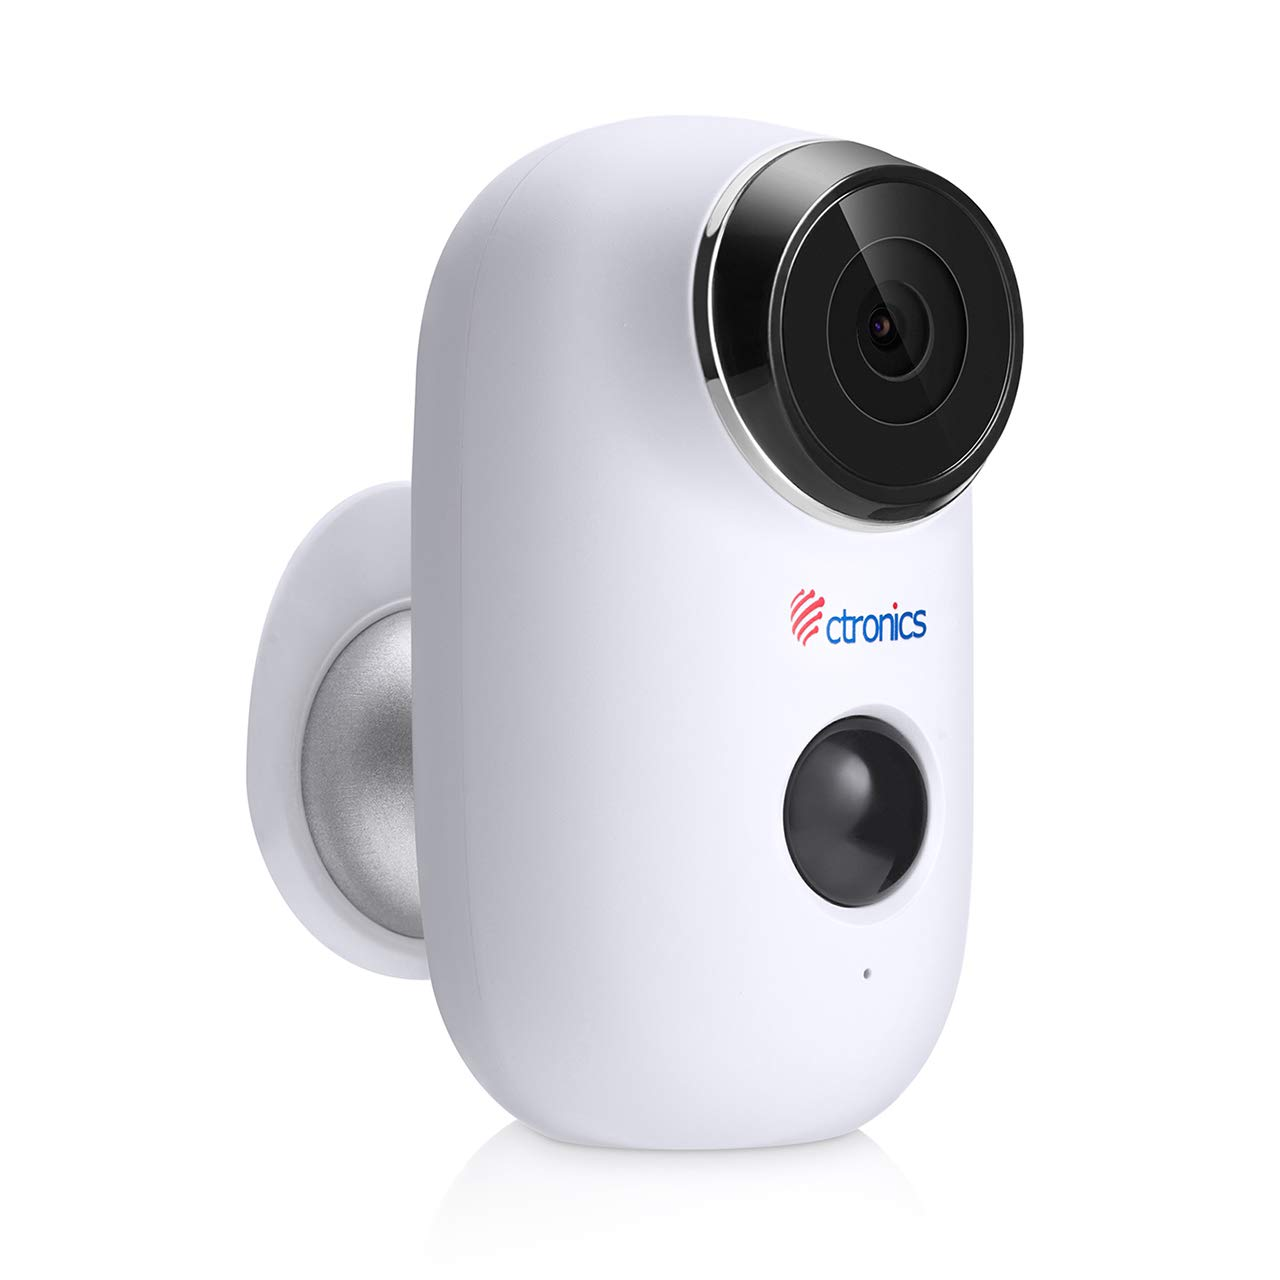 Ctronics Outdoor Security Camera, Wireless Rechargeable Battery Powered Surveillance System